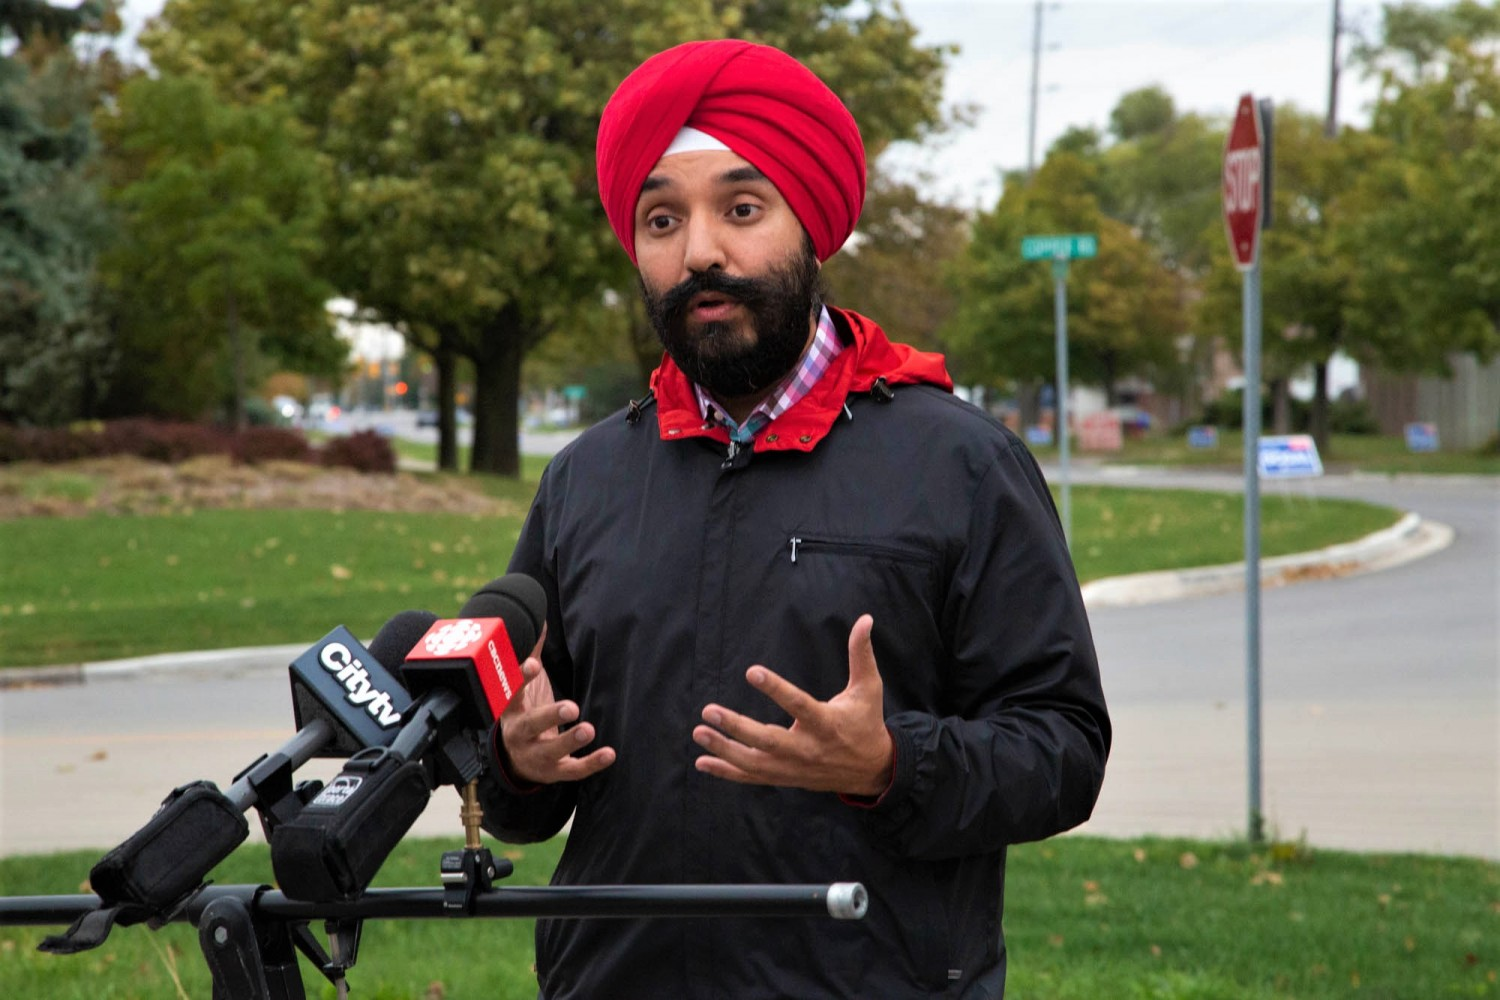 Navdeep Bains crashes Jason Kenney appearance in Brampton, sparking confrontation